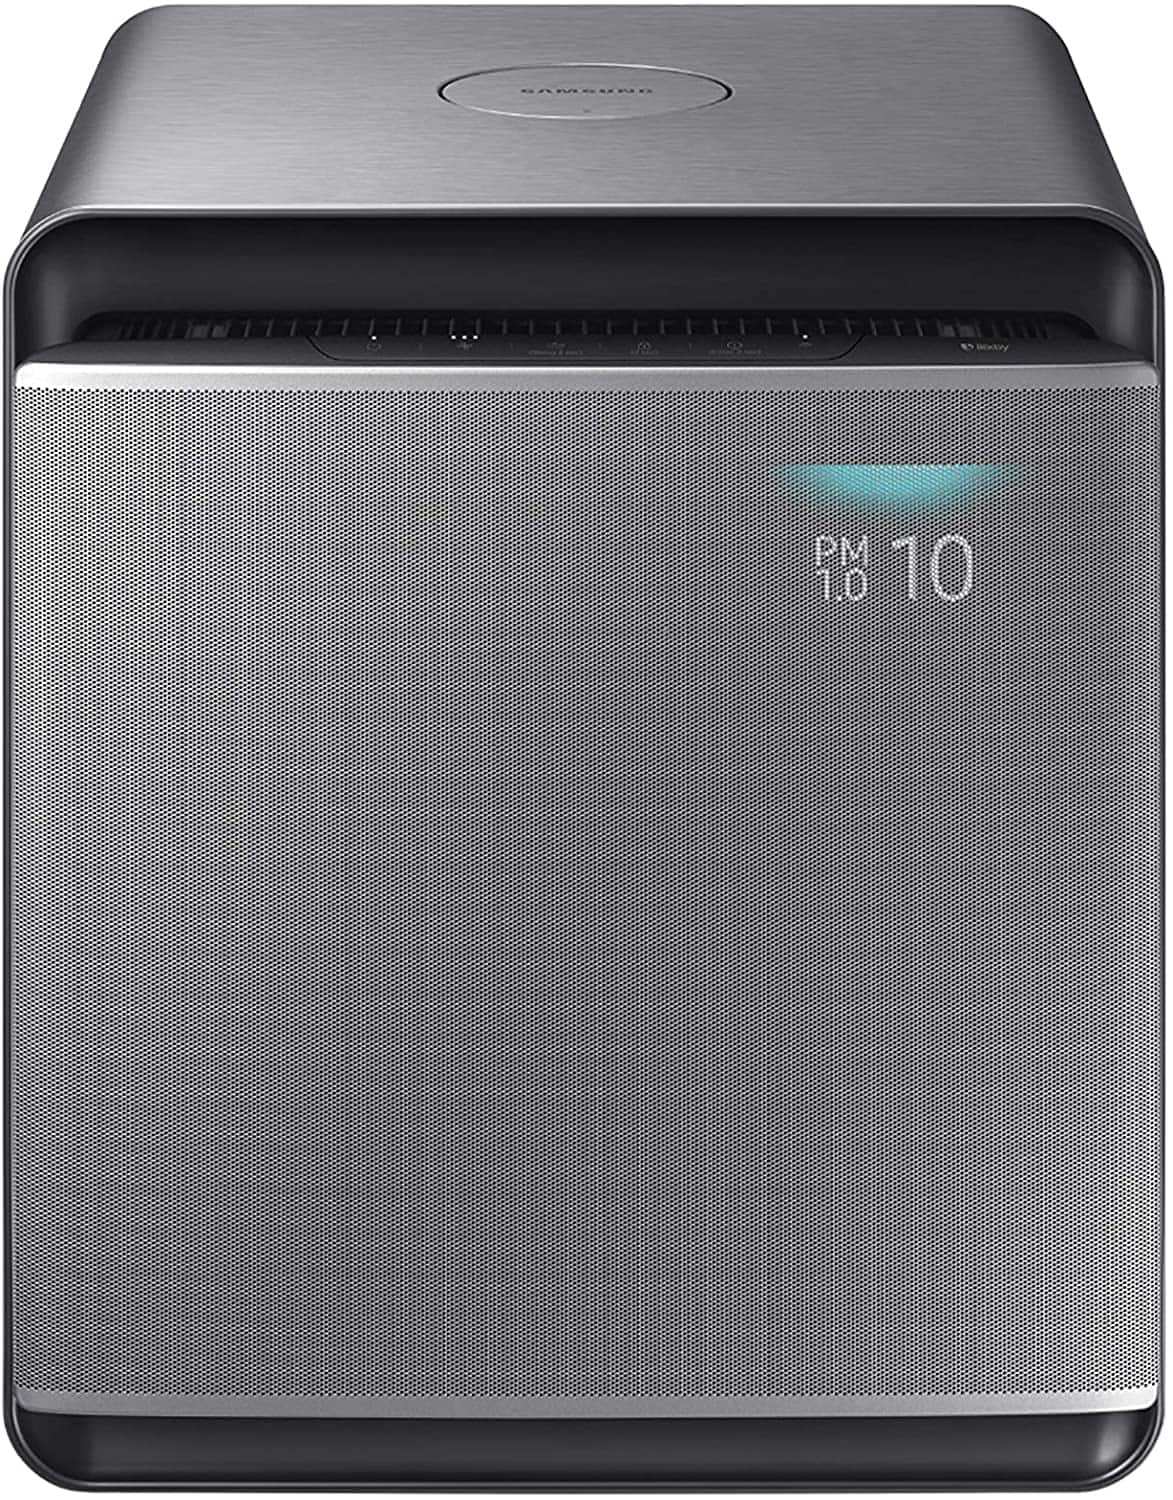 Samsung Cube Smart Air Purifier in Honed Silver - $199 (with edu and work place discounts) + Free Shipping